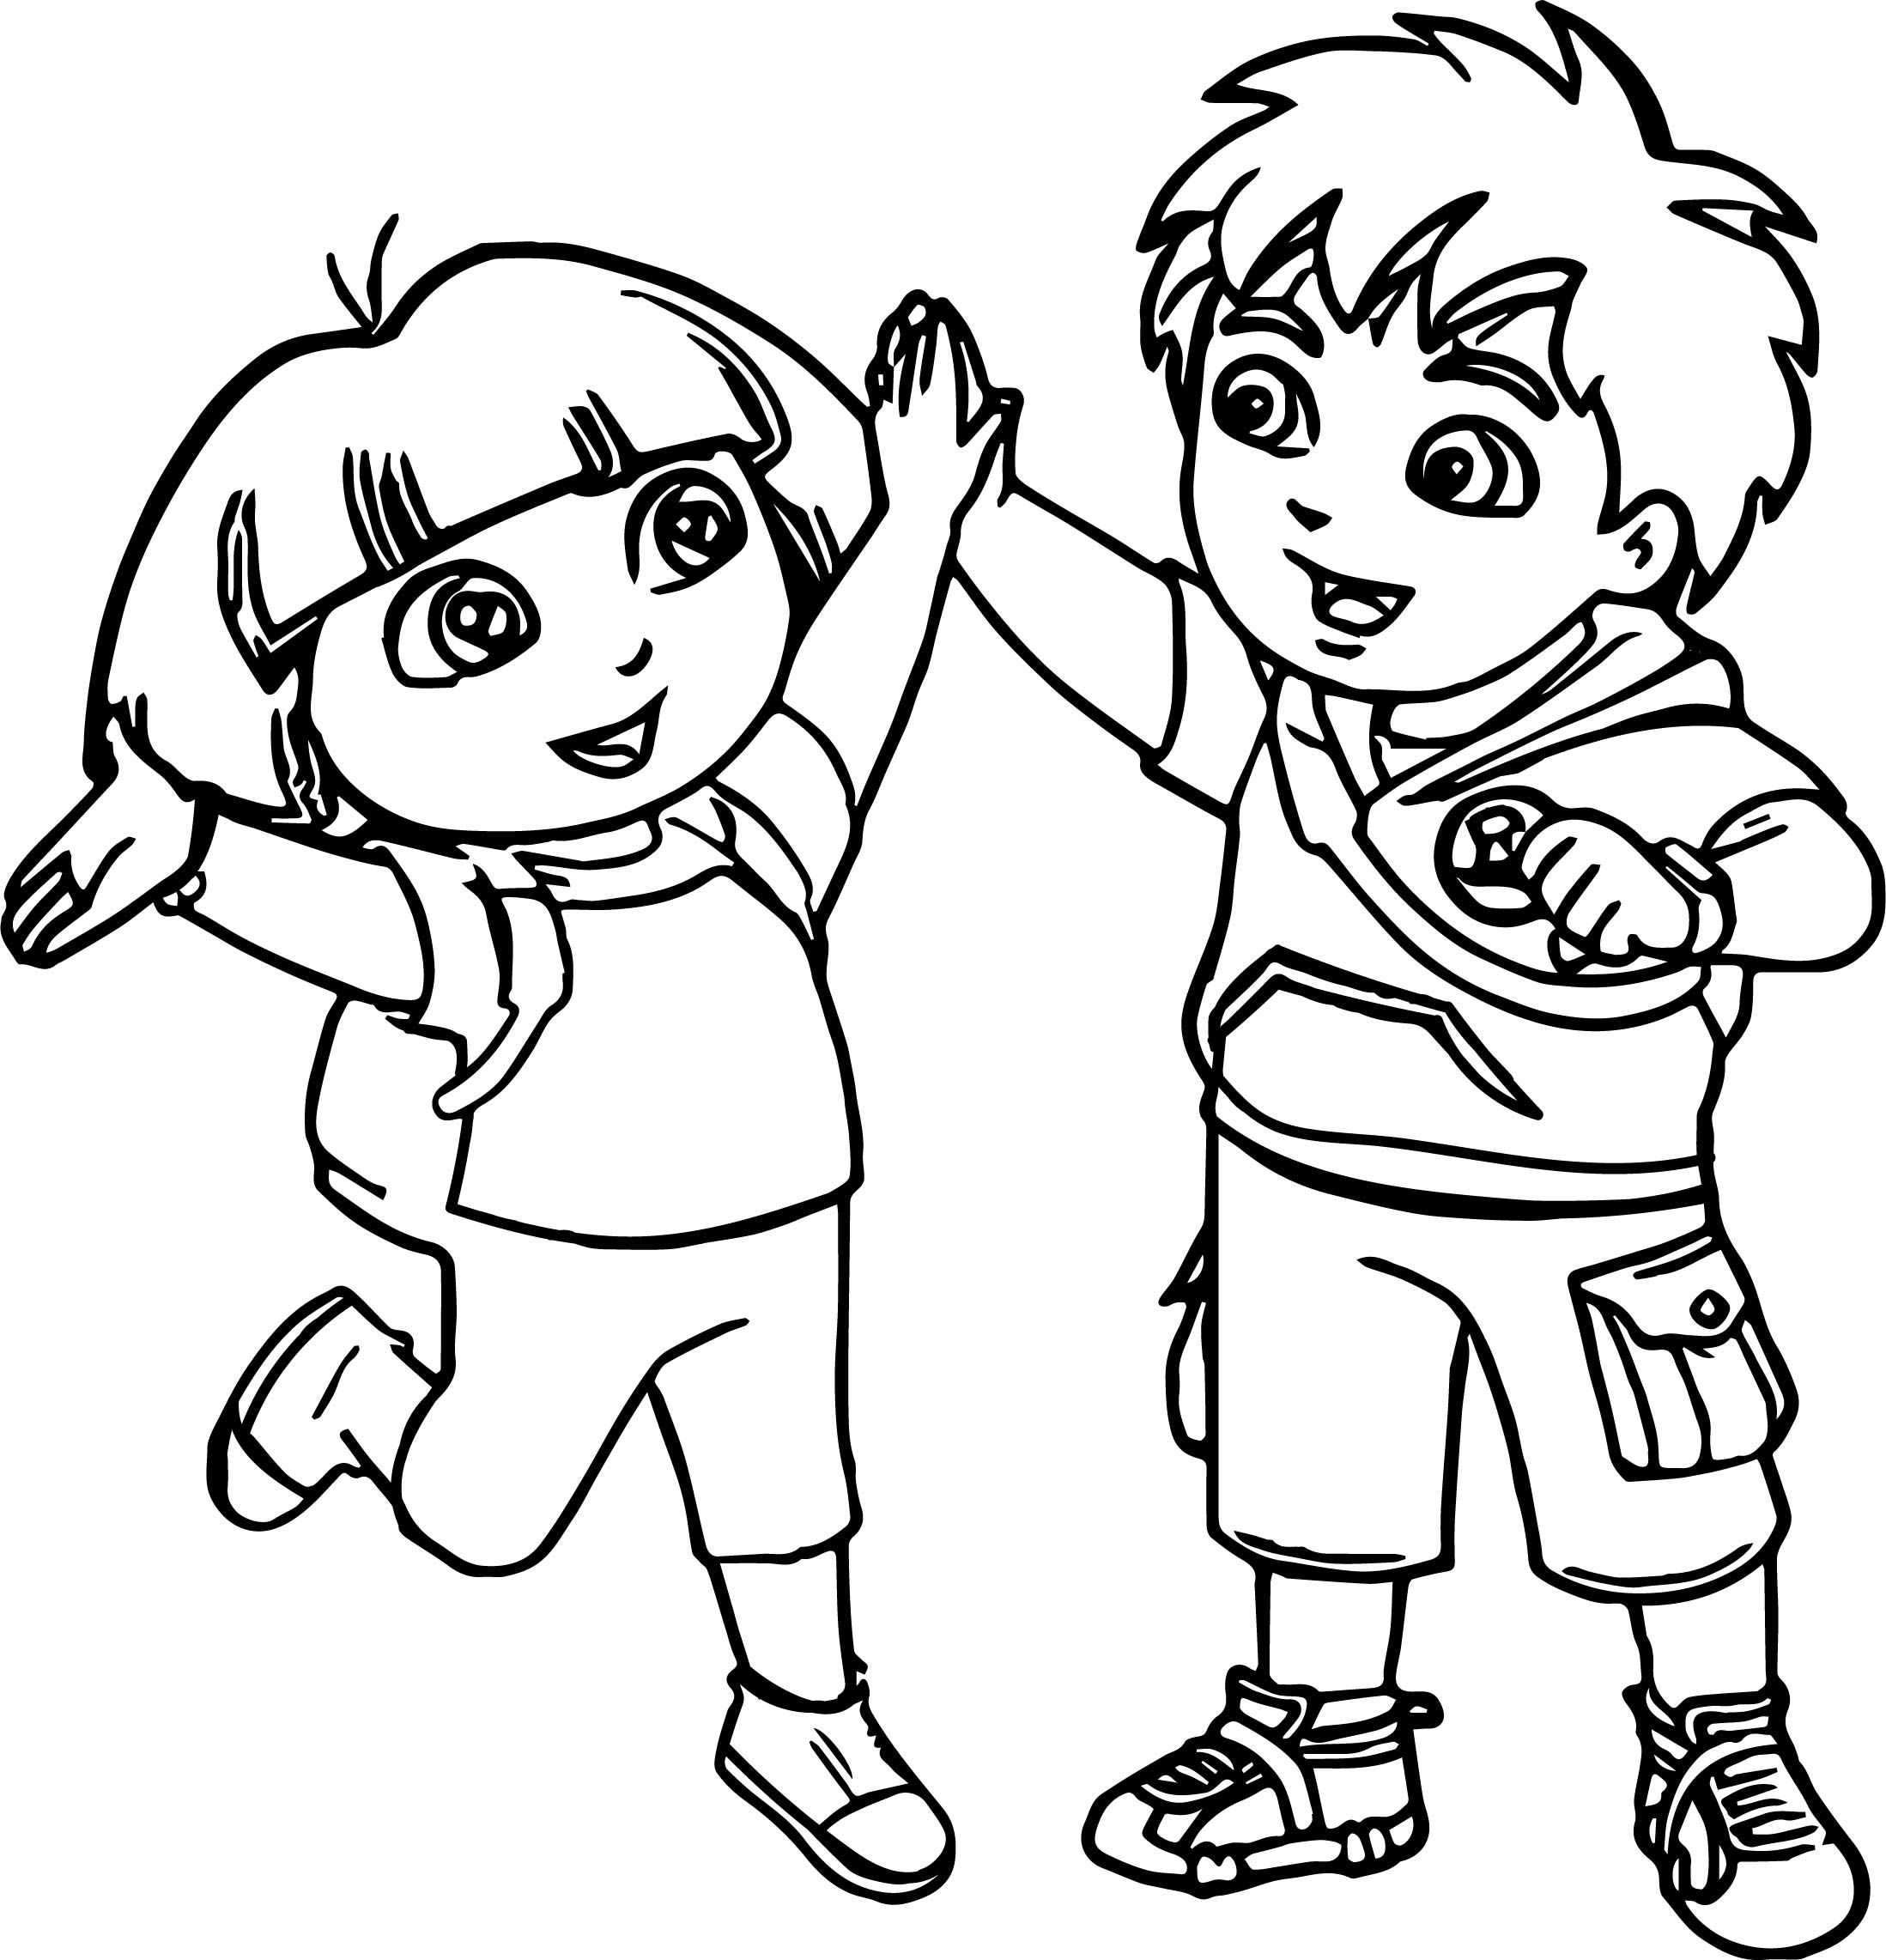 Dora and Her Backpack in Dora the Explorer Coloring Page - NetArt | 2283x2197